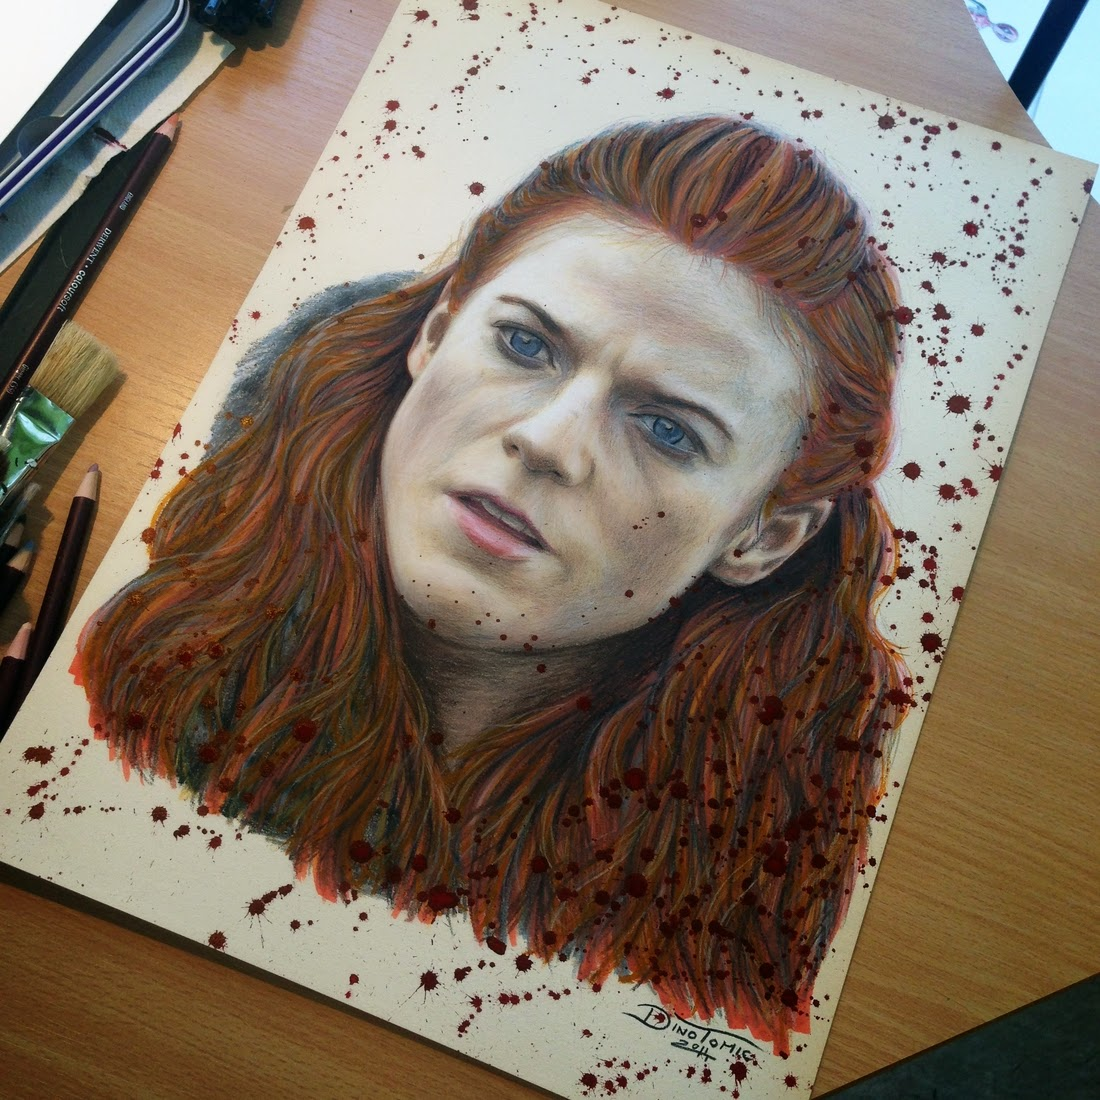 17-Ygritte-Dino-Tomic-AtomiccircuS-Mastering-Art-in-Eclectic-Drawings-www-designstack-co